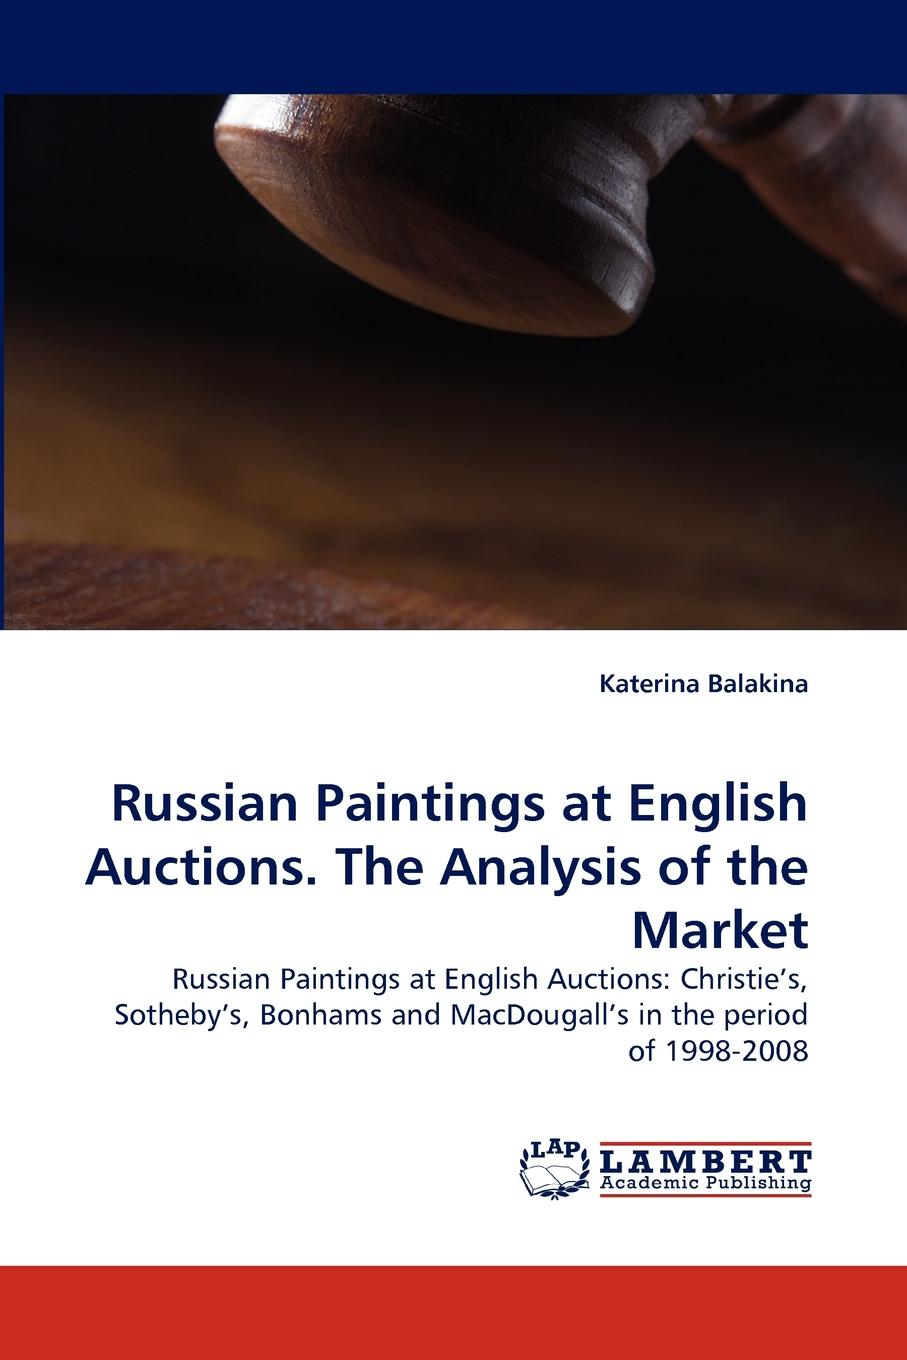 лучшая цена Katerina Balakina Russian Paintings at English Auctions. The Analysis of the Market